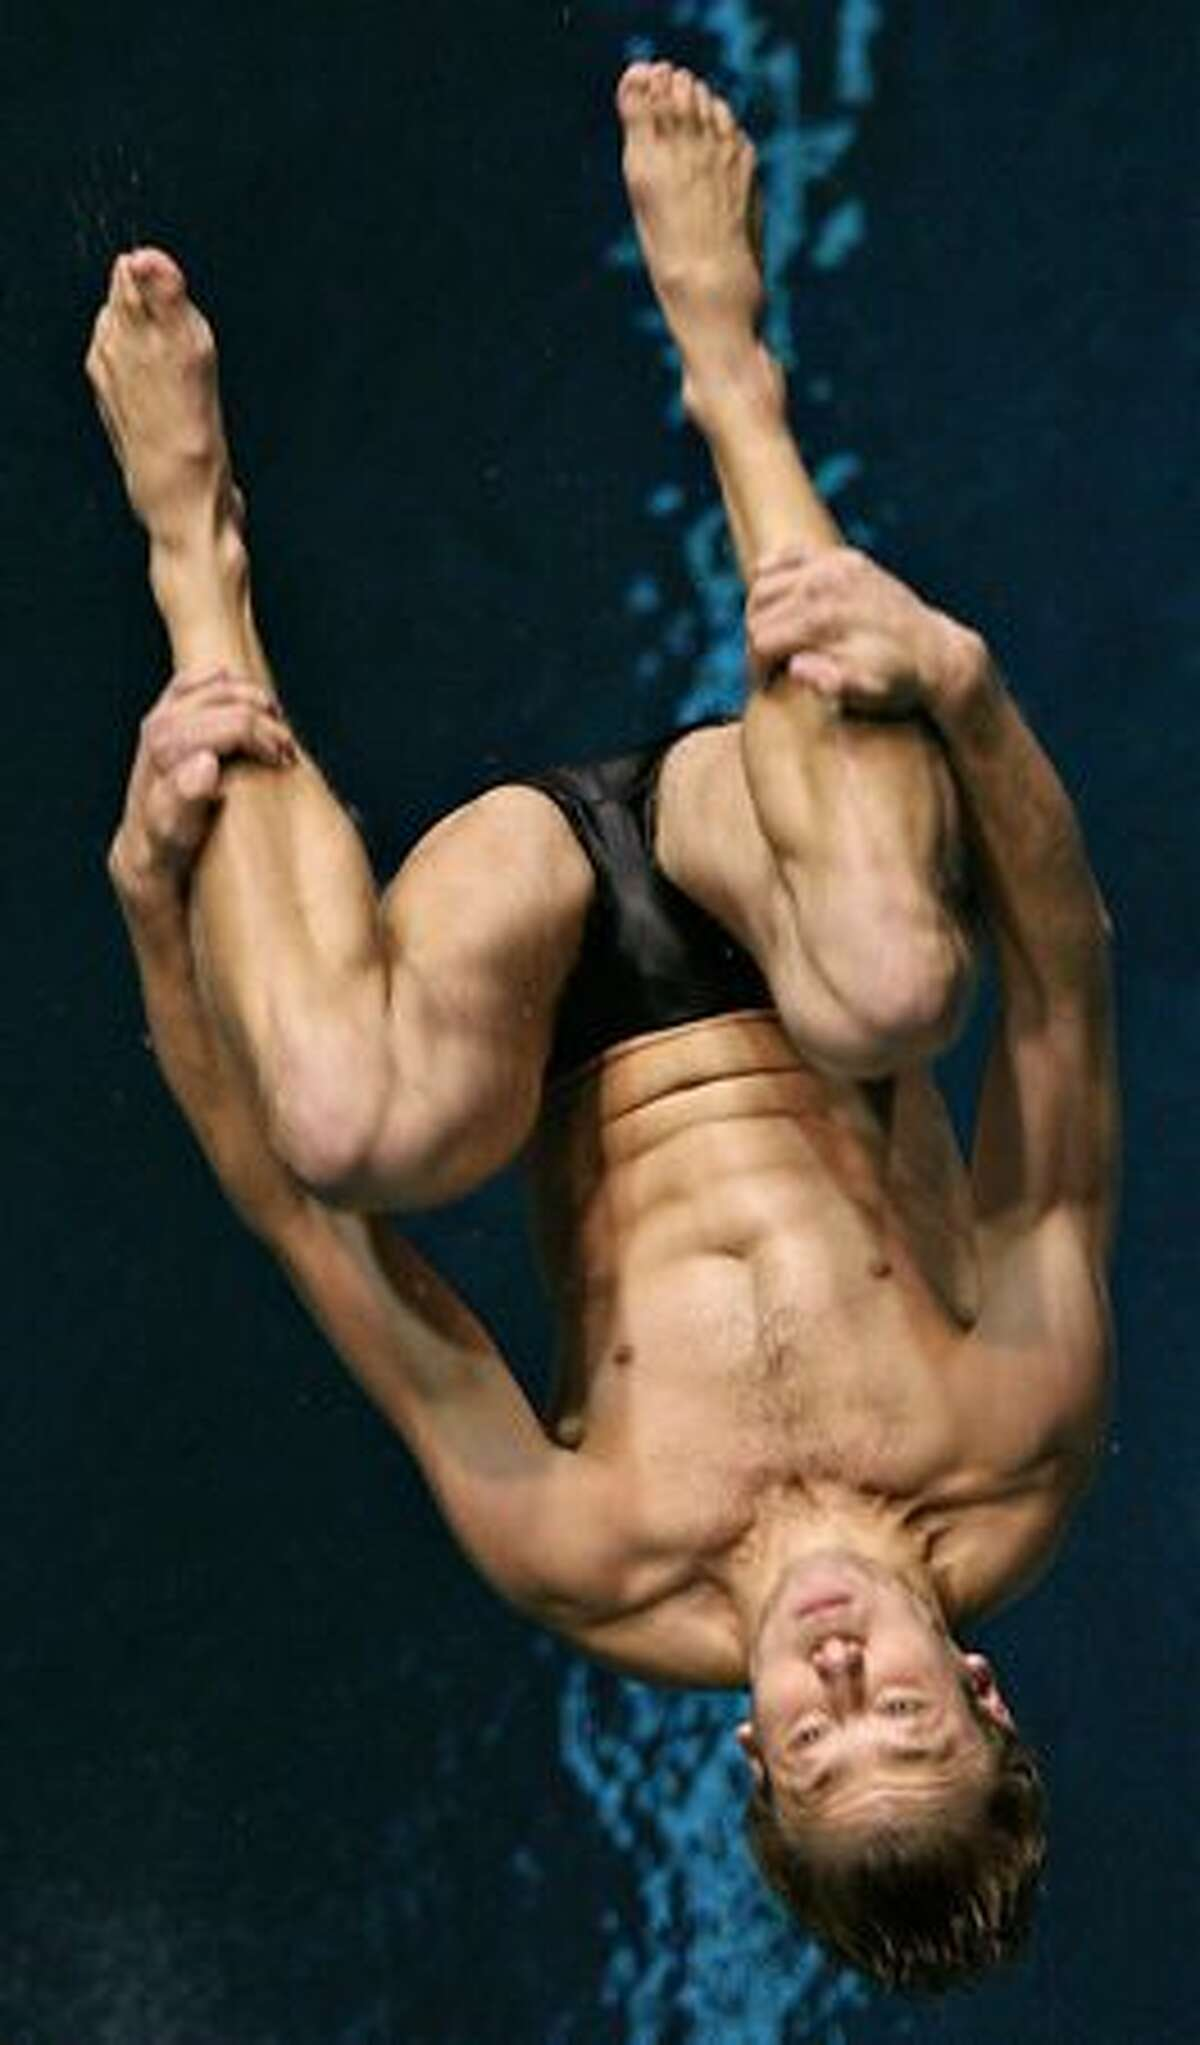 Steven Starks of USC competes in the finals of the men's one-meter diving competition. The PAC-10 diving championships are being held this weekend at the Weyerhaeuser-King County Aquatic Center in Federal Way. Competition continues through Saturday. (David Ryder/Seattlepi.com)